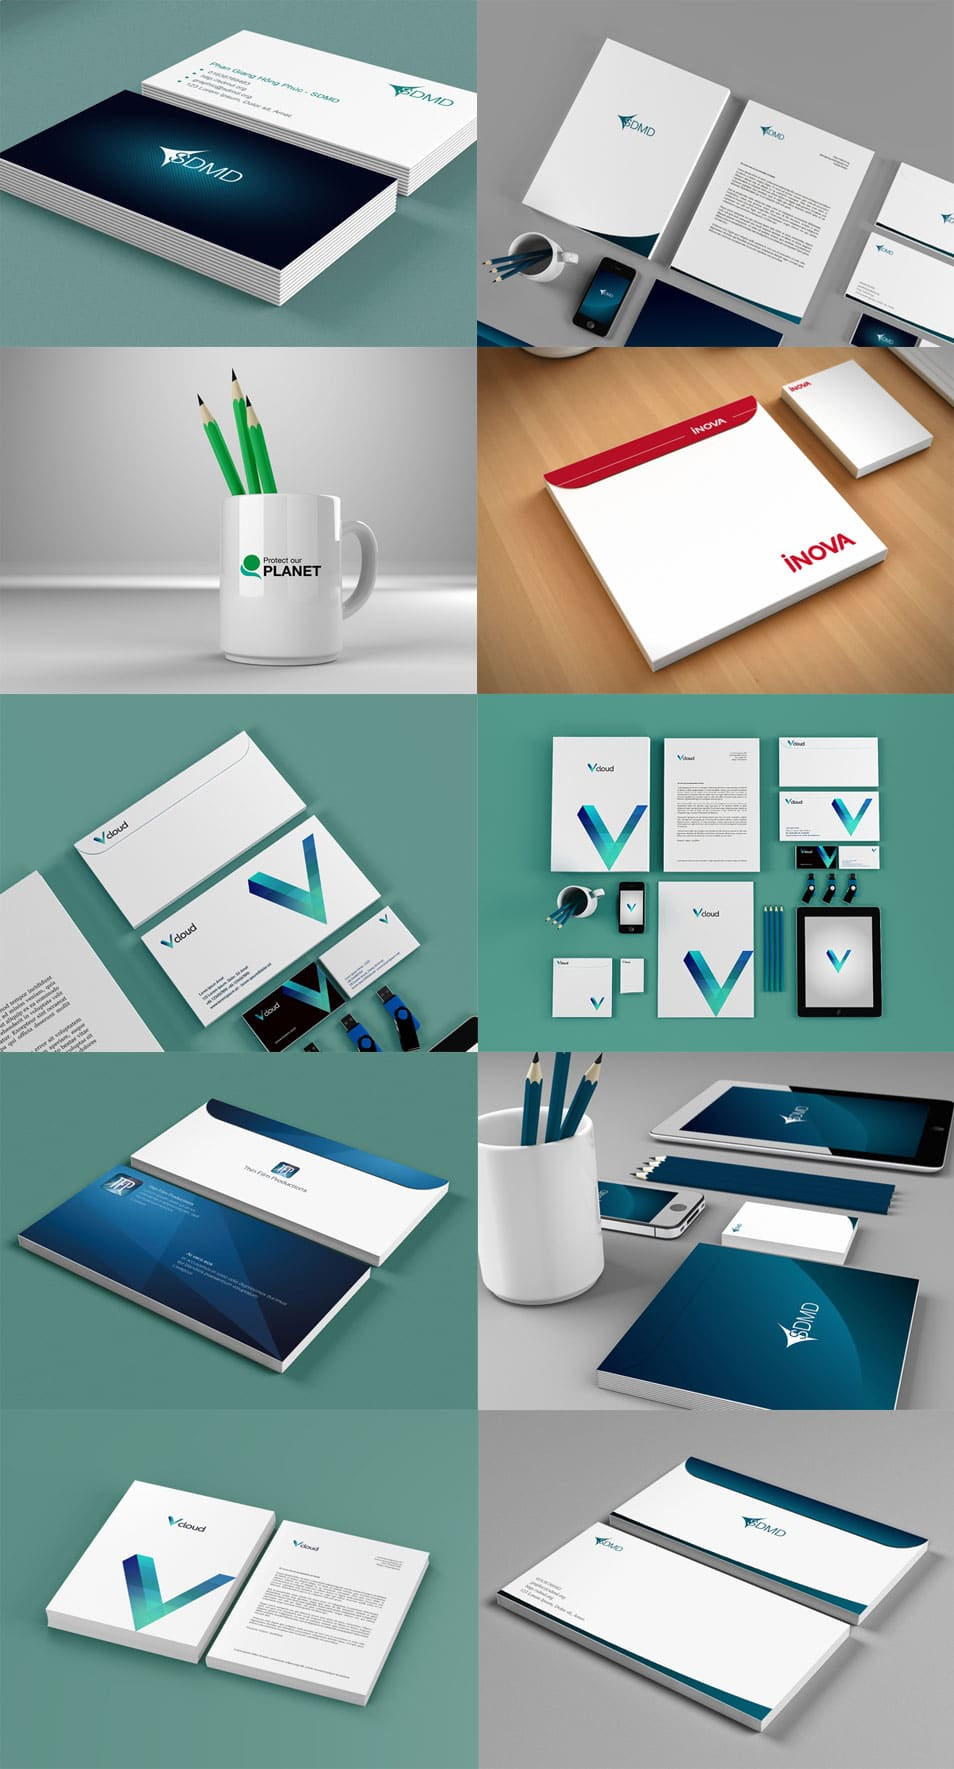 FREE !!! My ultimate mock up collection